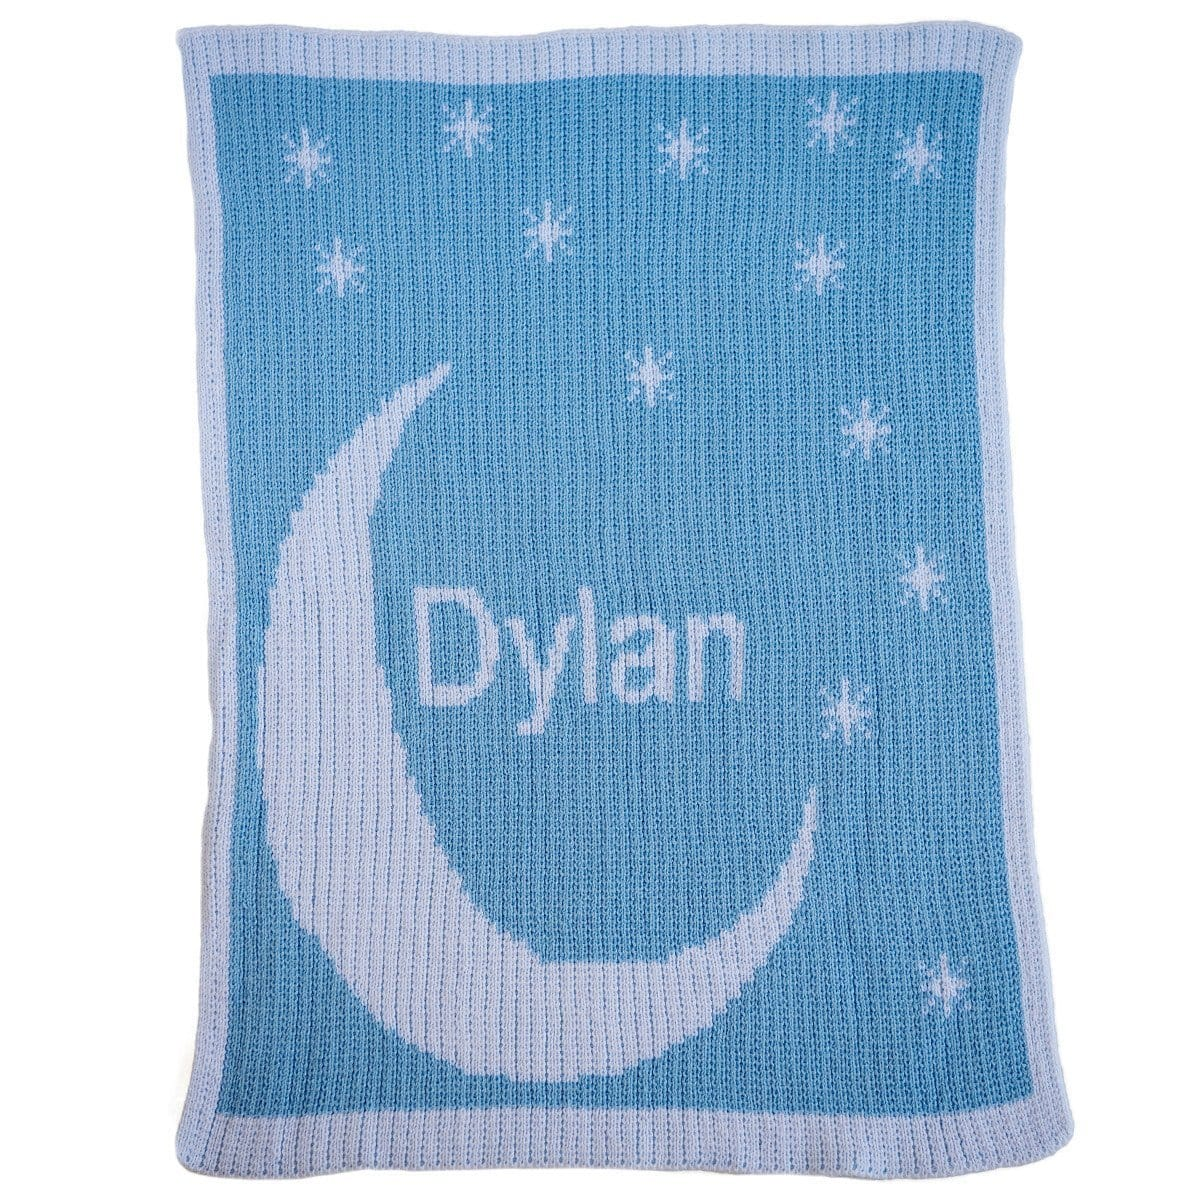 Moon & Stars Personalized Stroller Blanket or Baby Blanket-Blankets-Jack and Jill Boutique